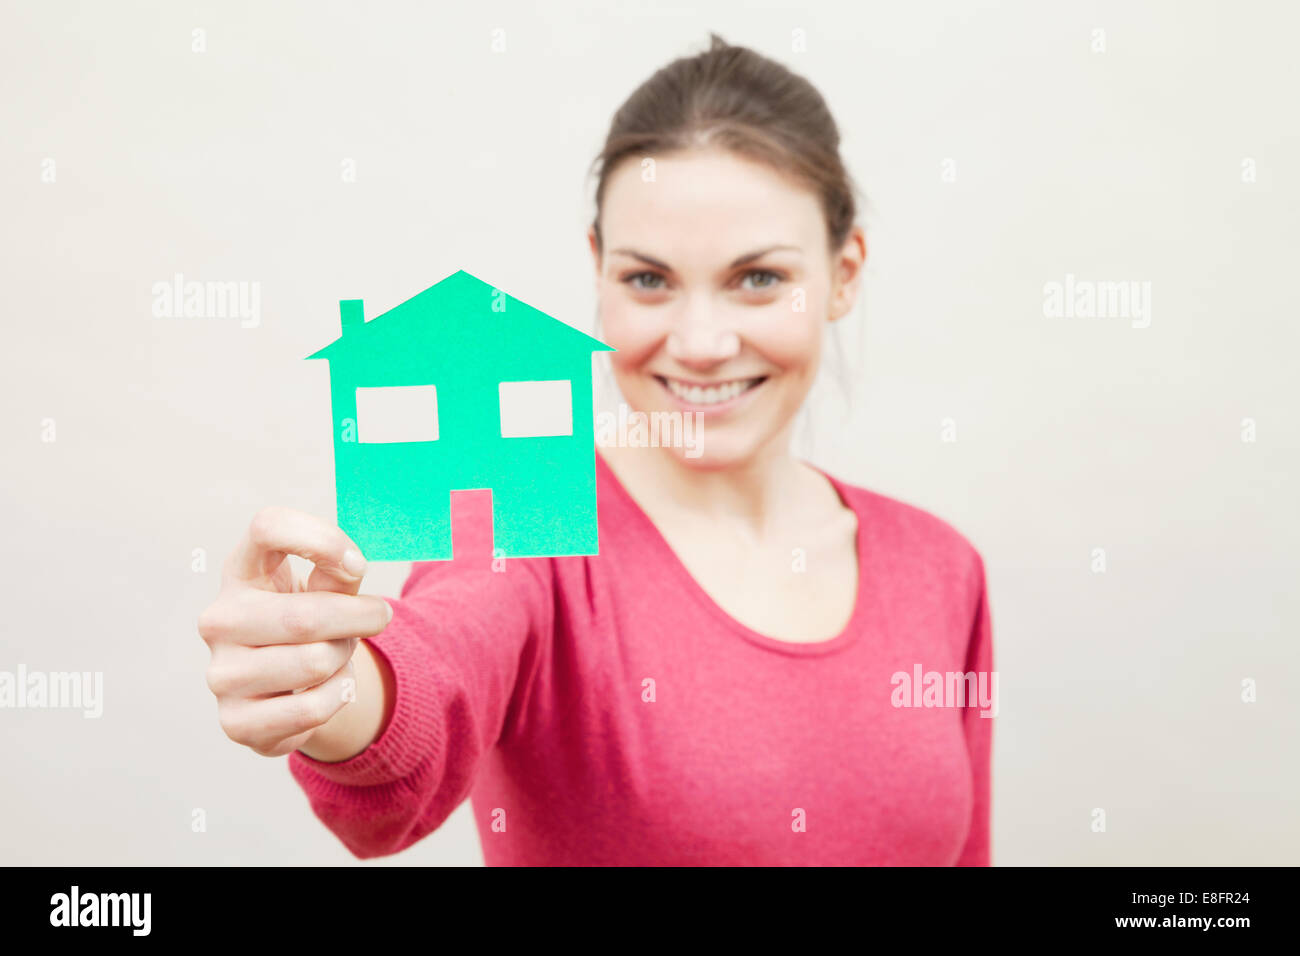 Young woman holding paper cut out of a house - Stock Image